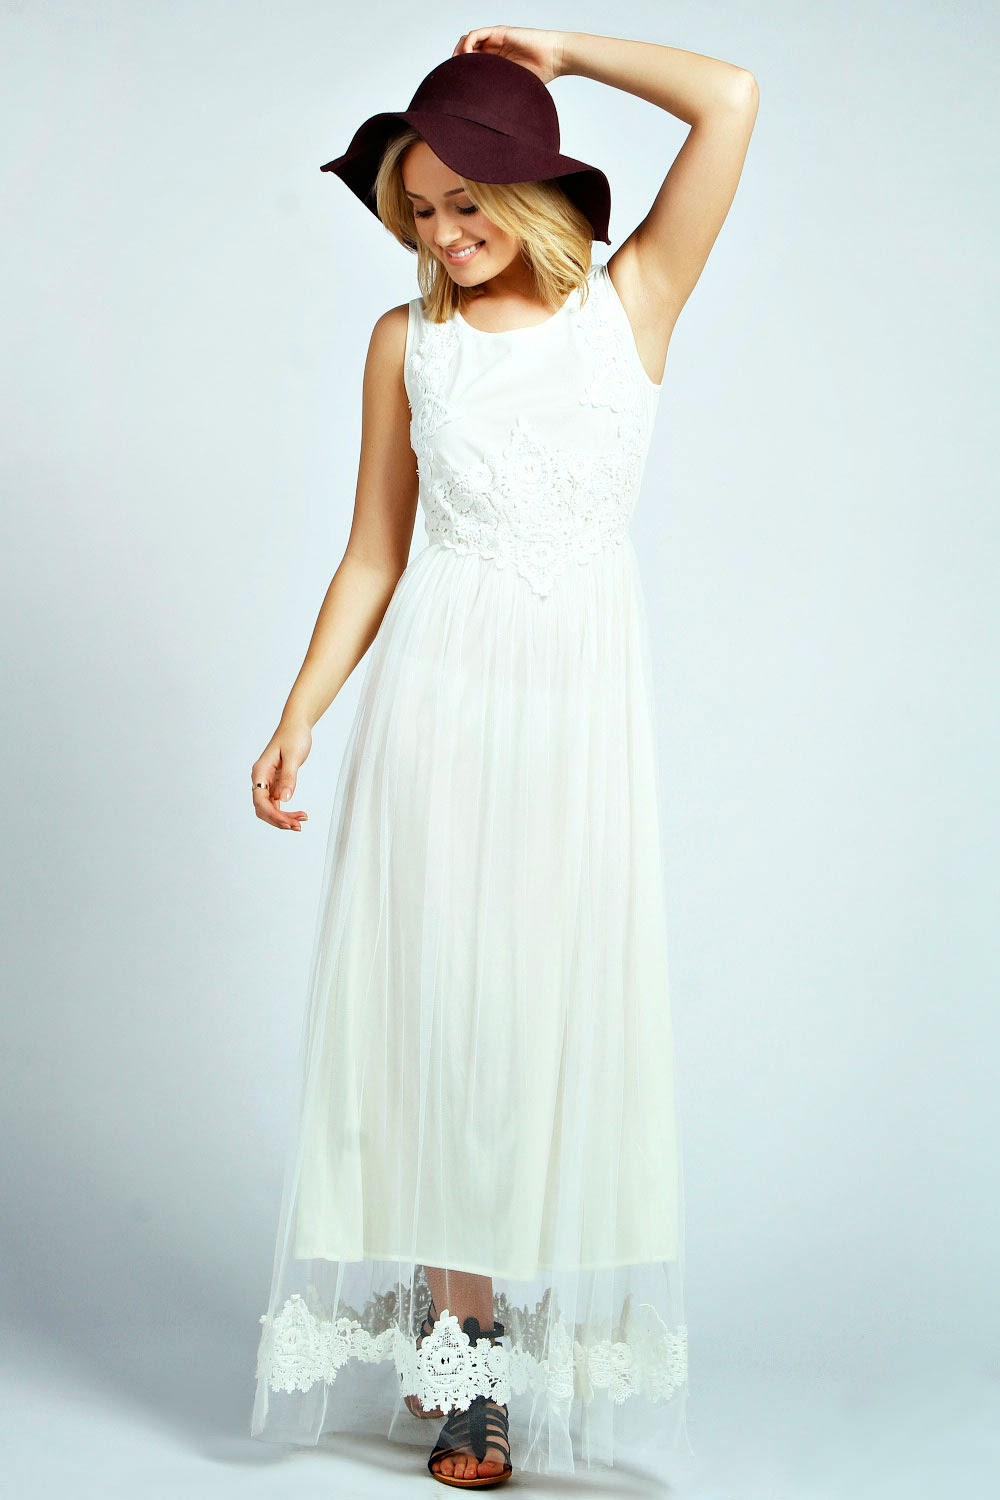 Boohoo Crochet Maxi Dress - Affordable Wedding Dresses: Crochet